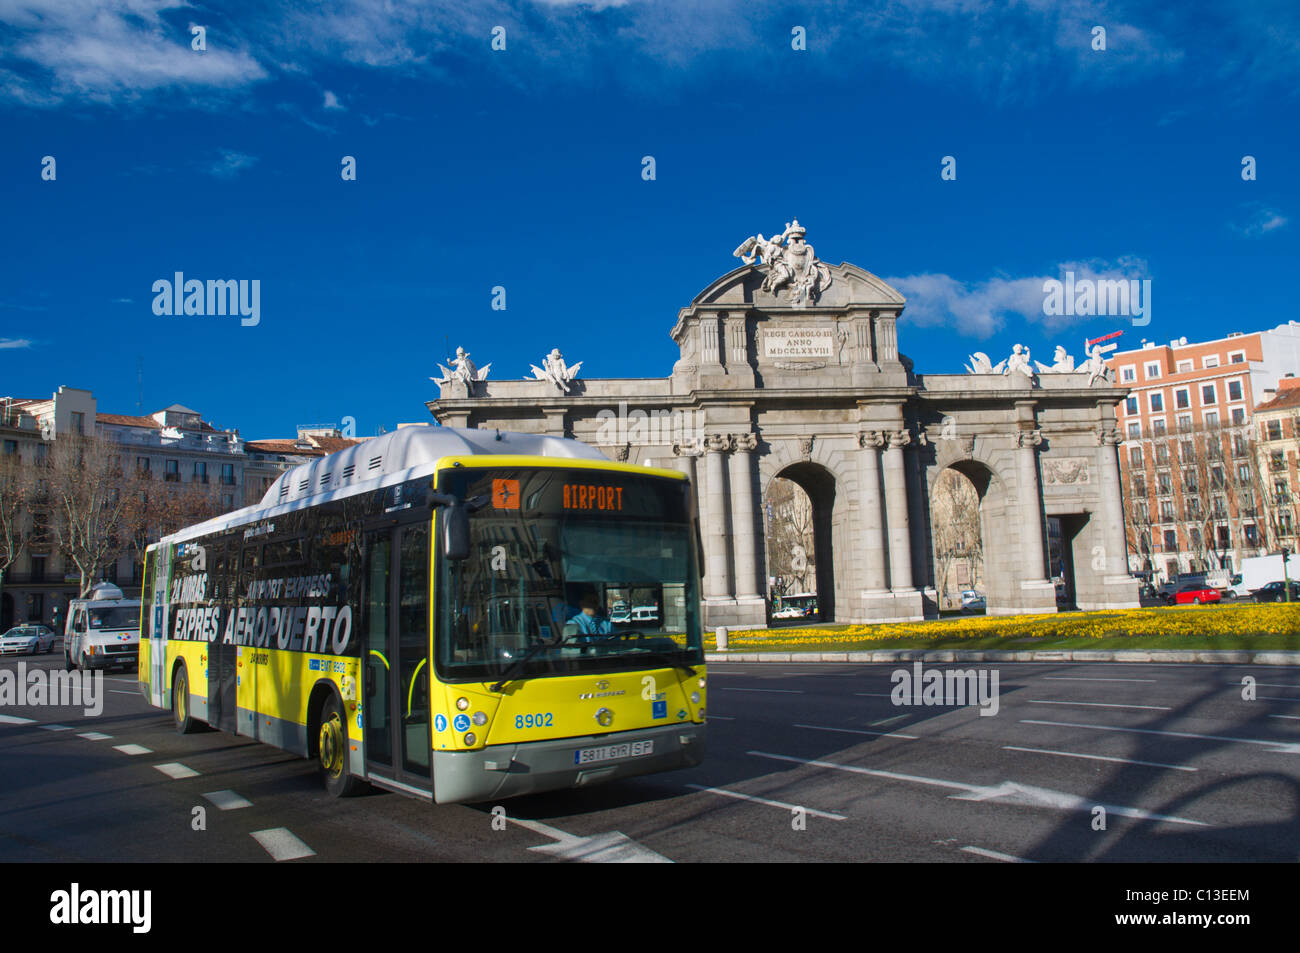 Airport bus at Plaza de la Independencia square roundabout central Madrid Spain Europe - Stock Image